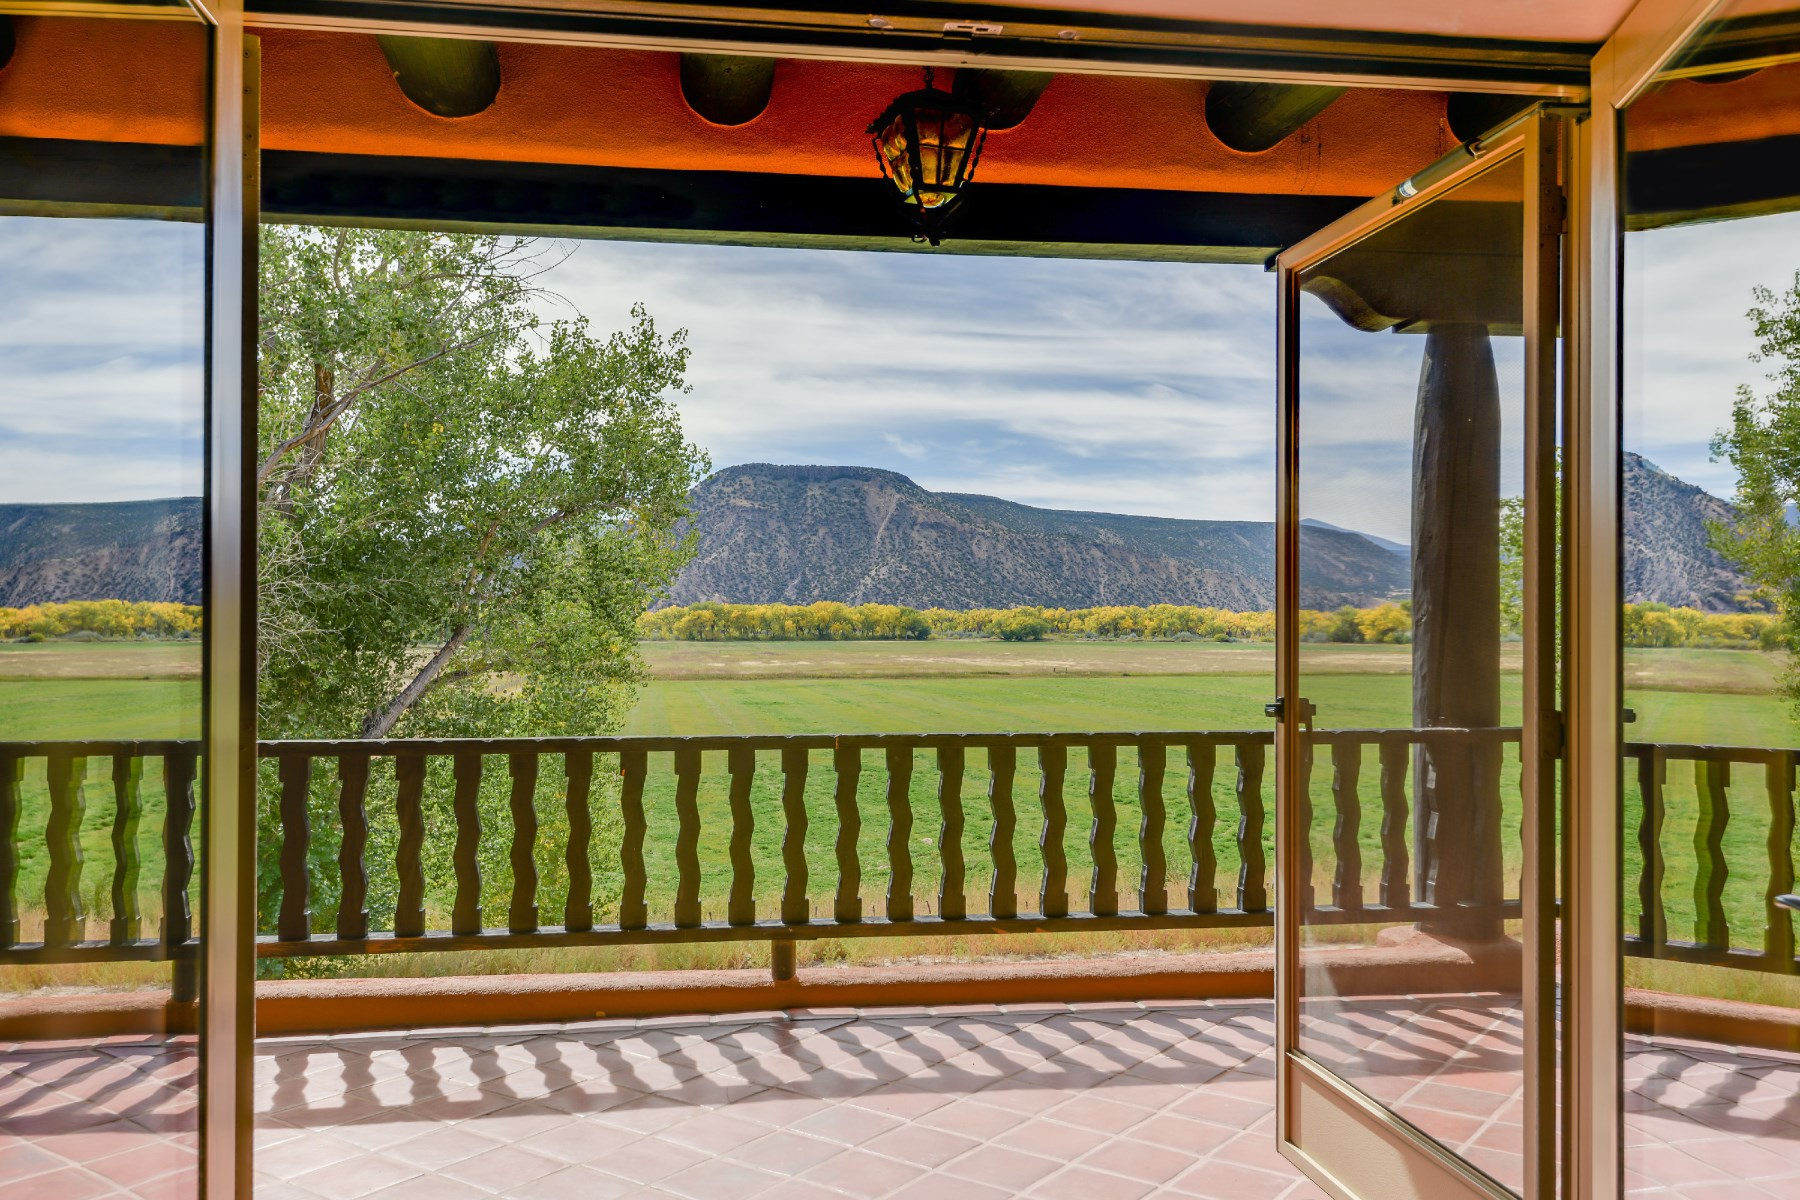 Single Family Home for Sale at The Hunt Ranch at Abiquiu Abiquiu, New Mexico 87510 United States